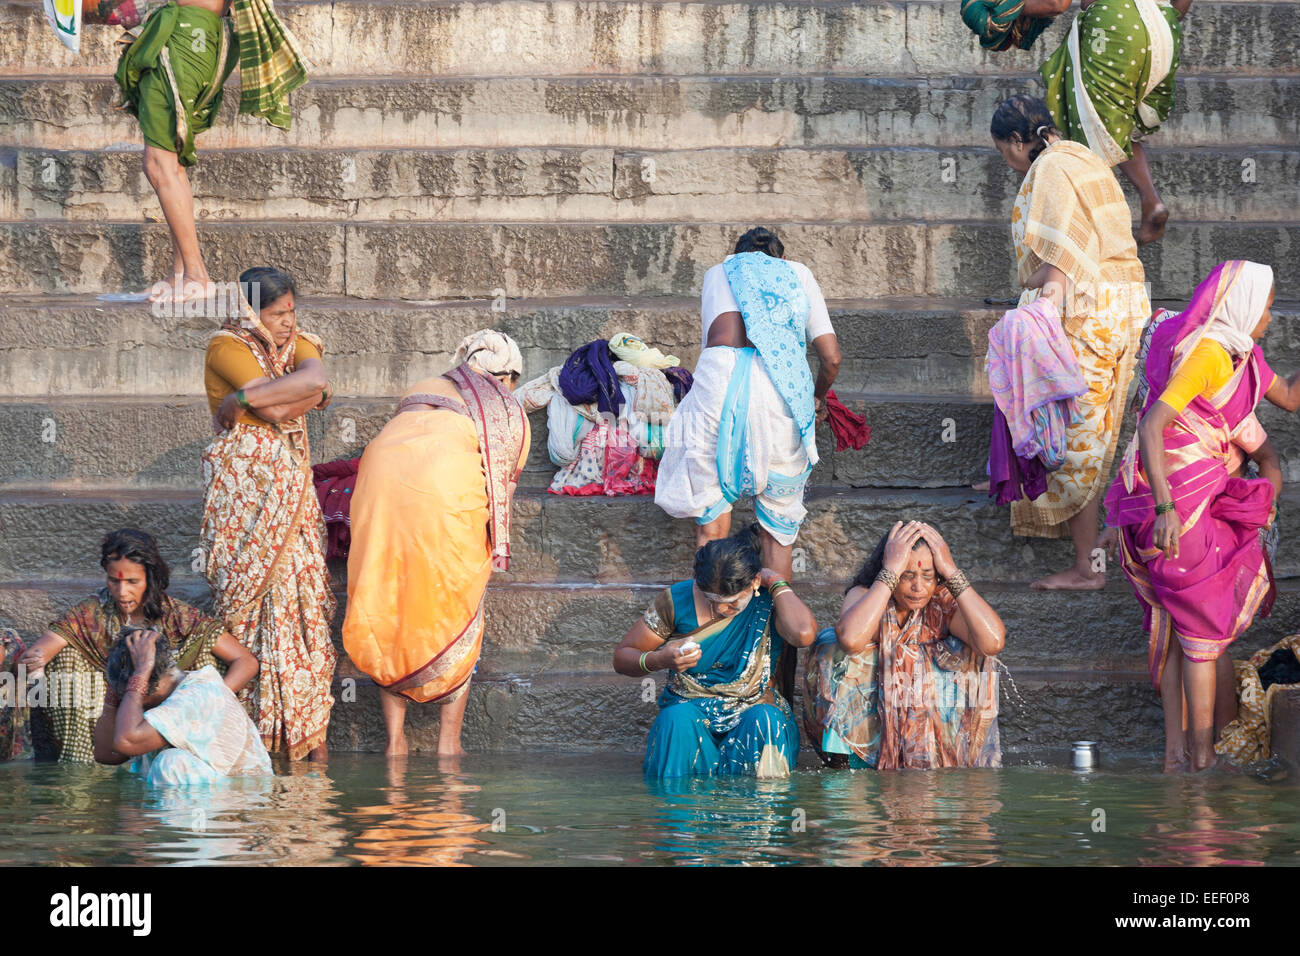 9d506b36d19 Varanasi, India. Hindu women bathing and praying in the Ganges river ...